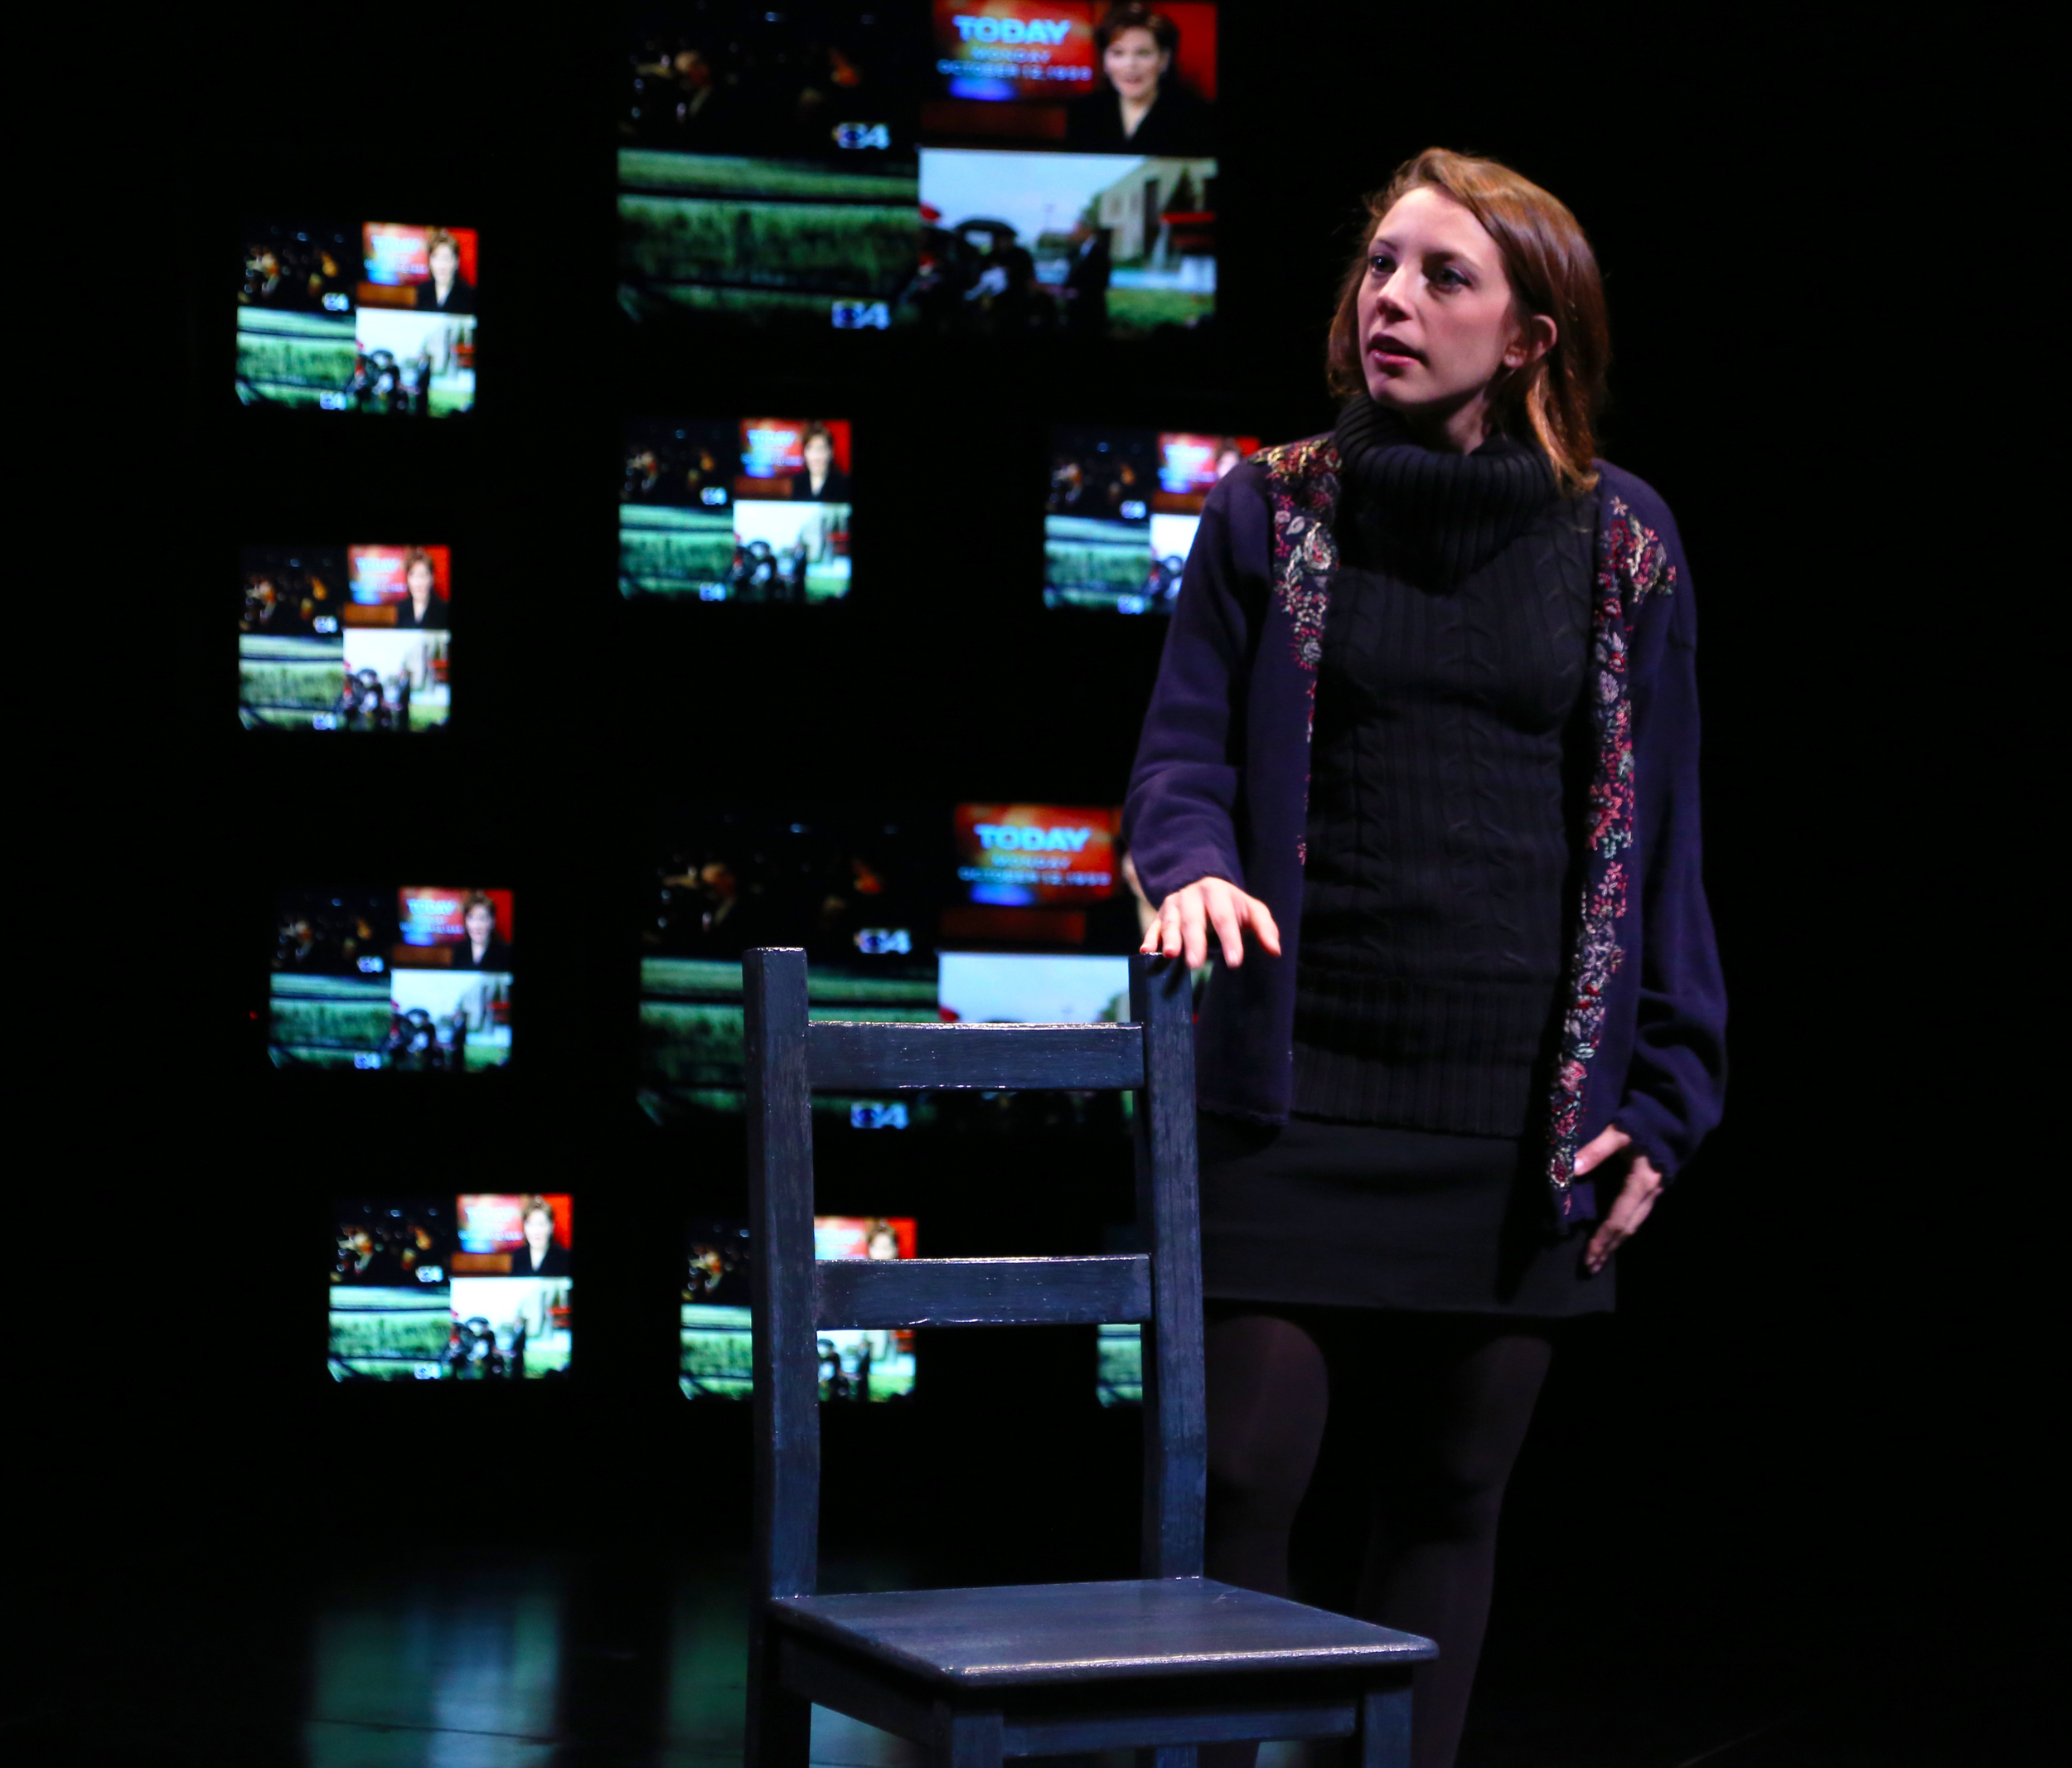 BFA Acting senior Susannah Resnikoff in THE LARAMIE PROJECT by Moisés Kaufman and the members of Tectonic Theatre Project onstage in Connecticut Repertory Theatre's Nafe Katter Theatre from October 8-18, 2015.  Tickets and Info at crt.uconn.edu.  Photo by Gerry Goodstein.""